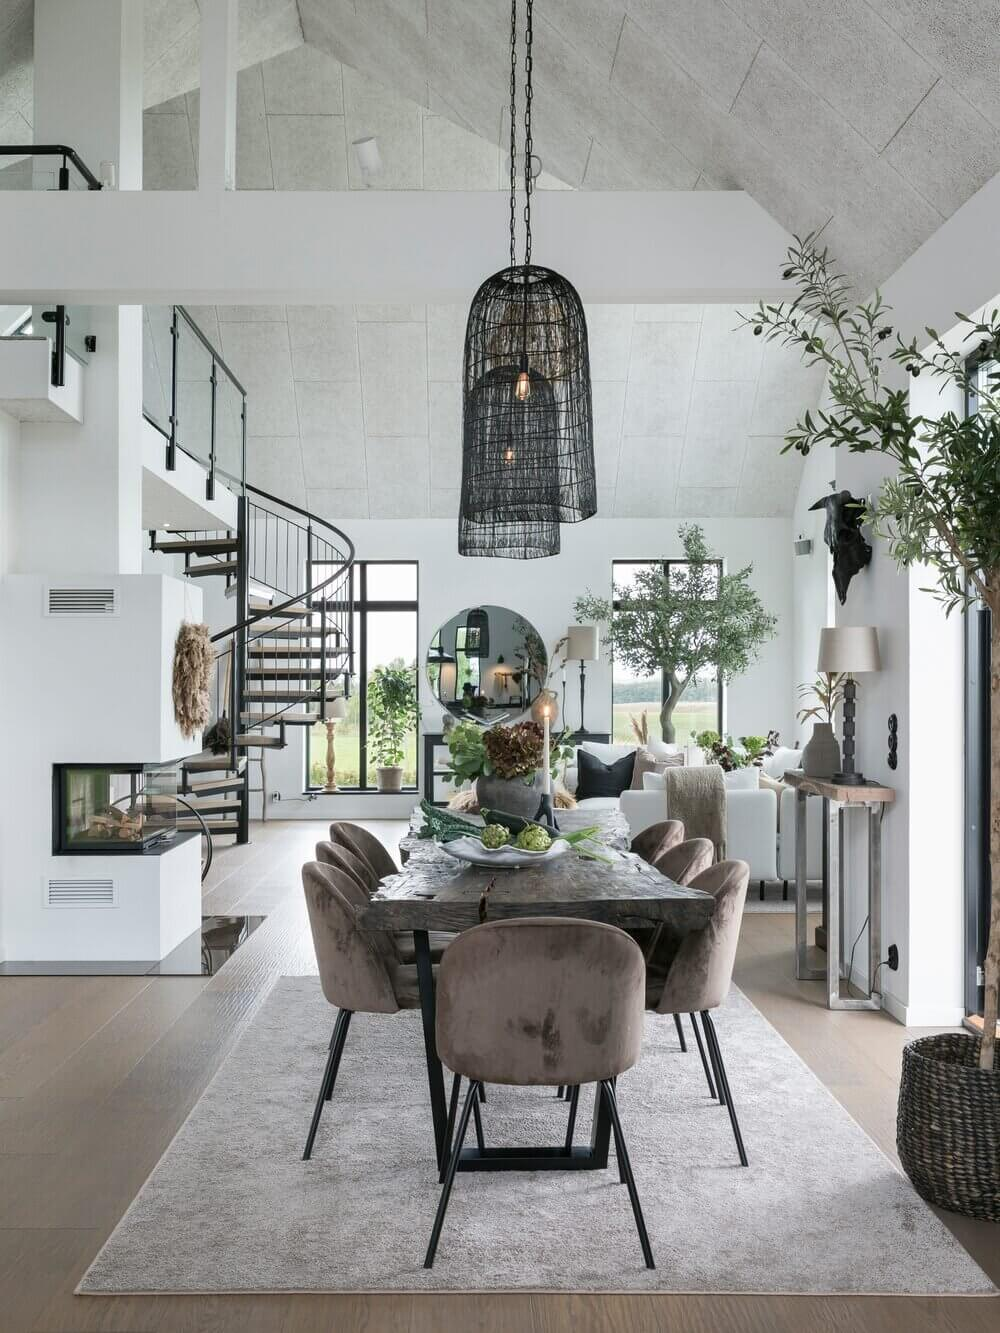 An Open-Plan Scandinavian Home with Double Height Ceilings